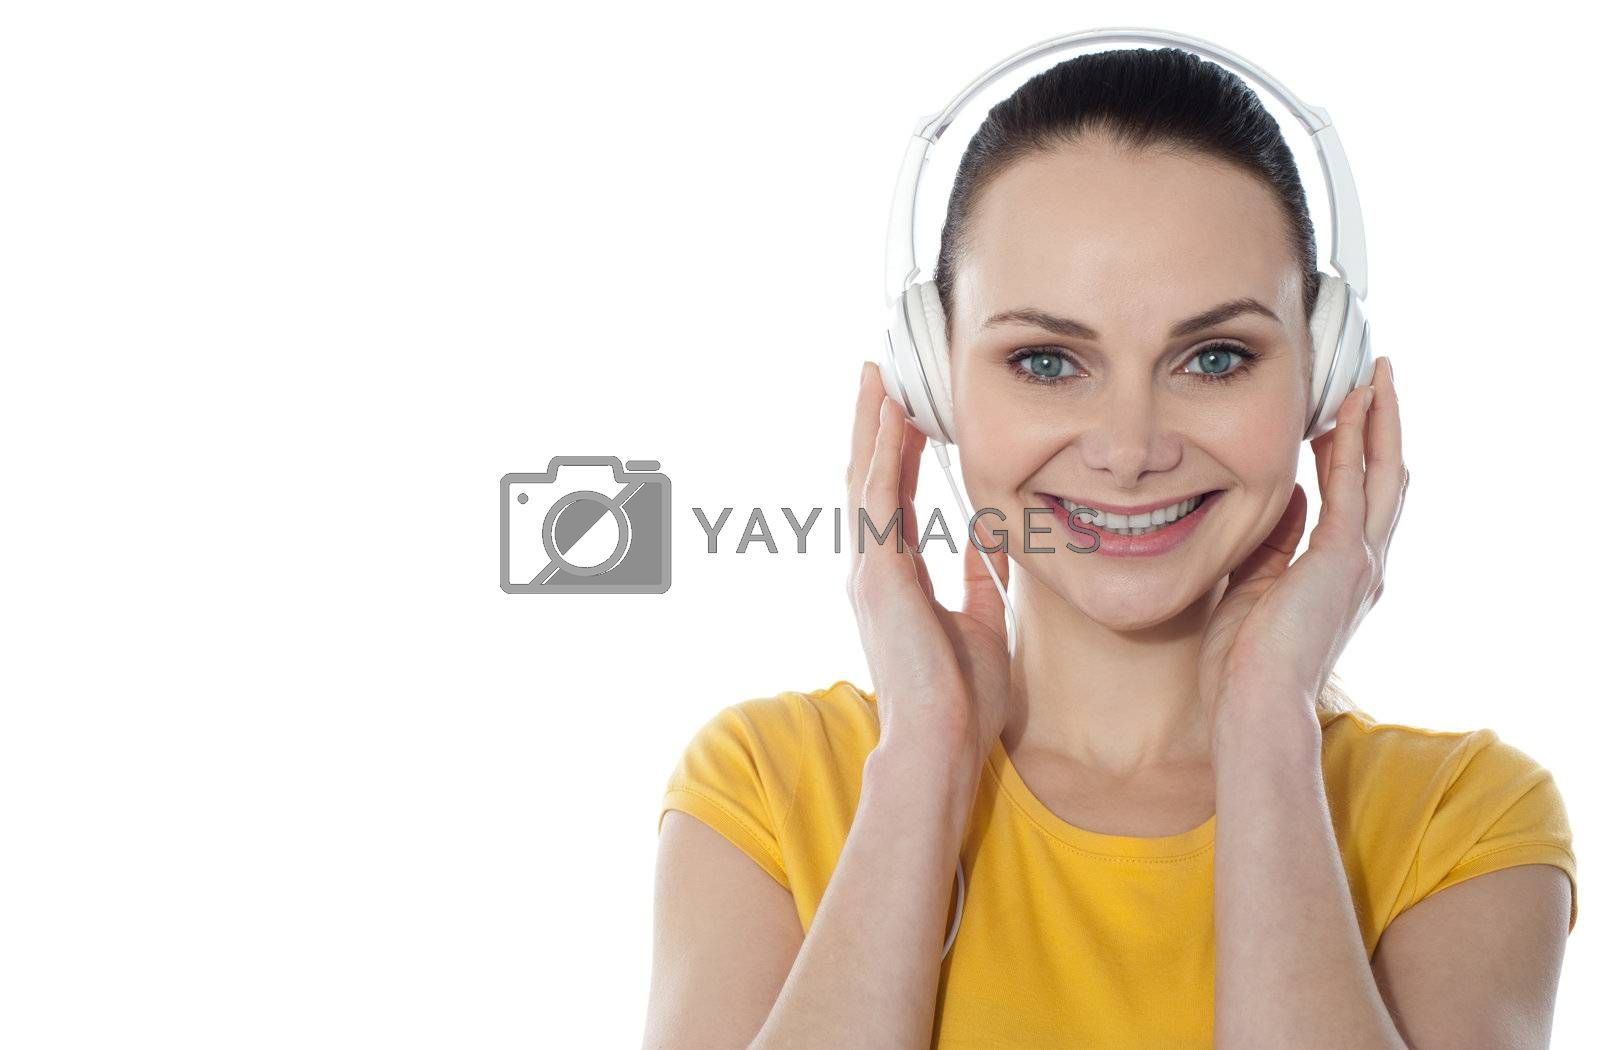 Attractive teenager listening to music on her mp3 player